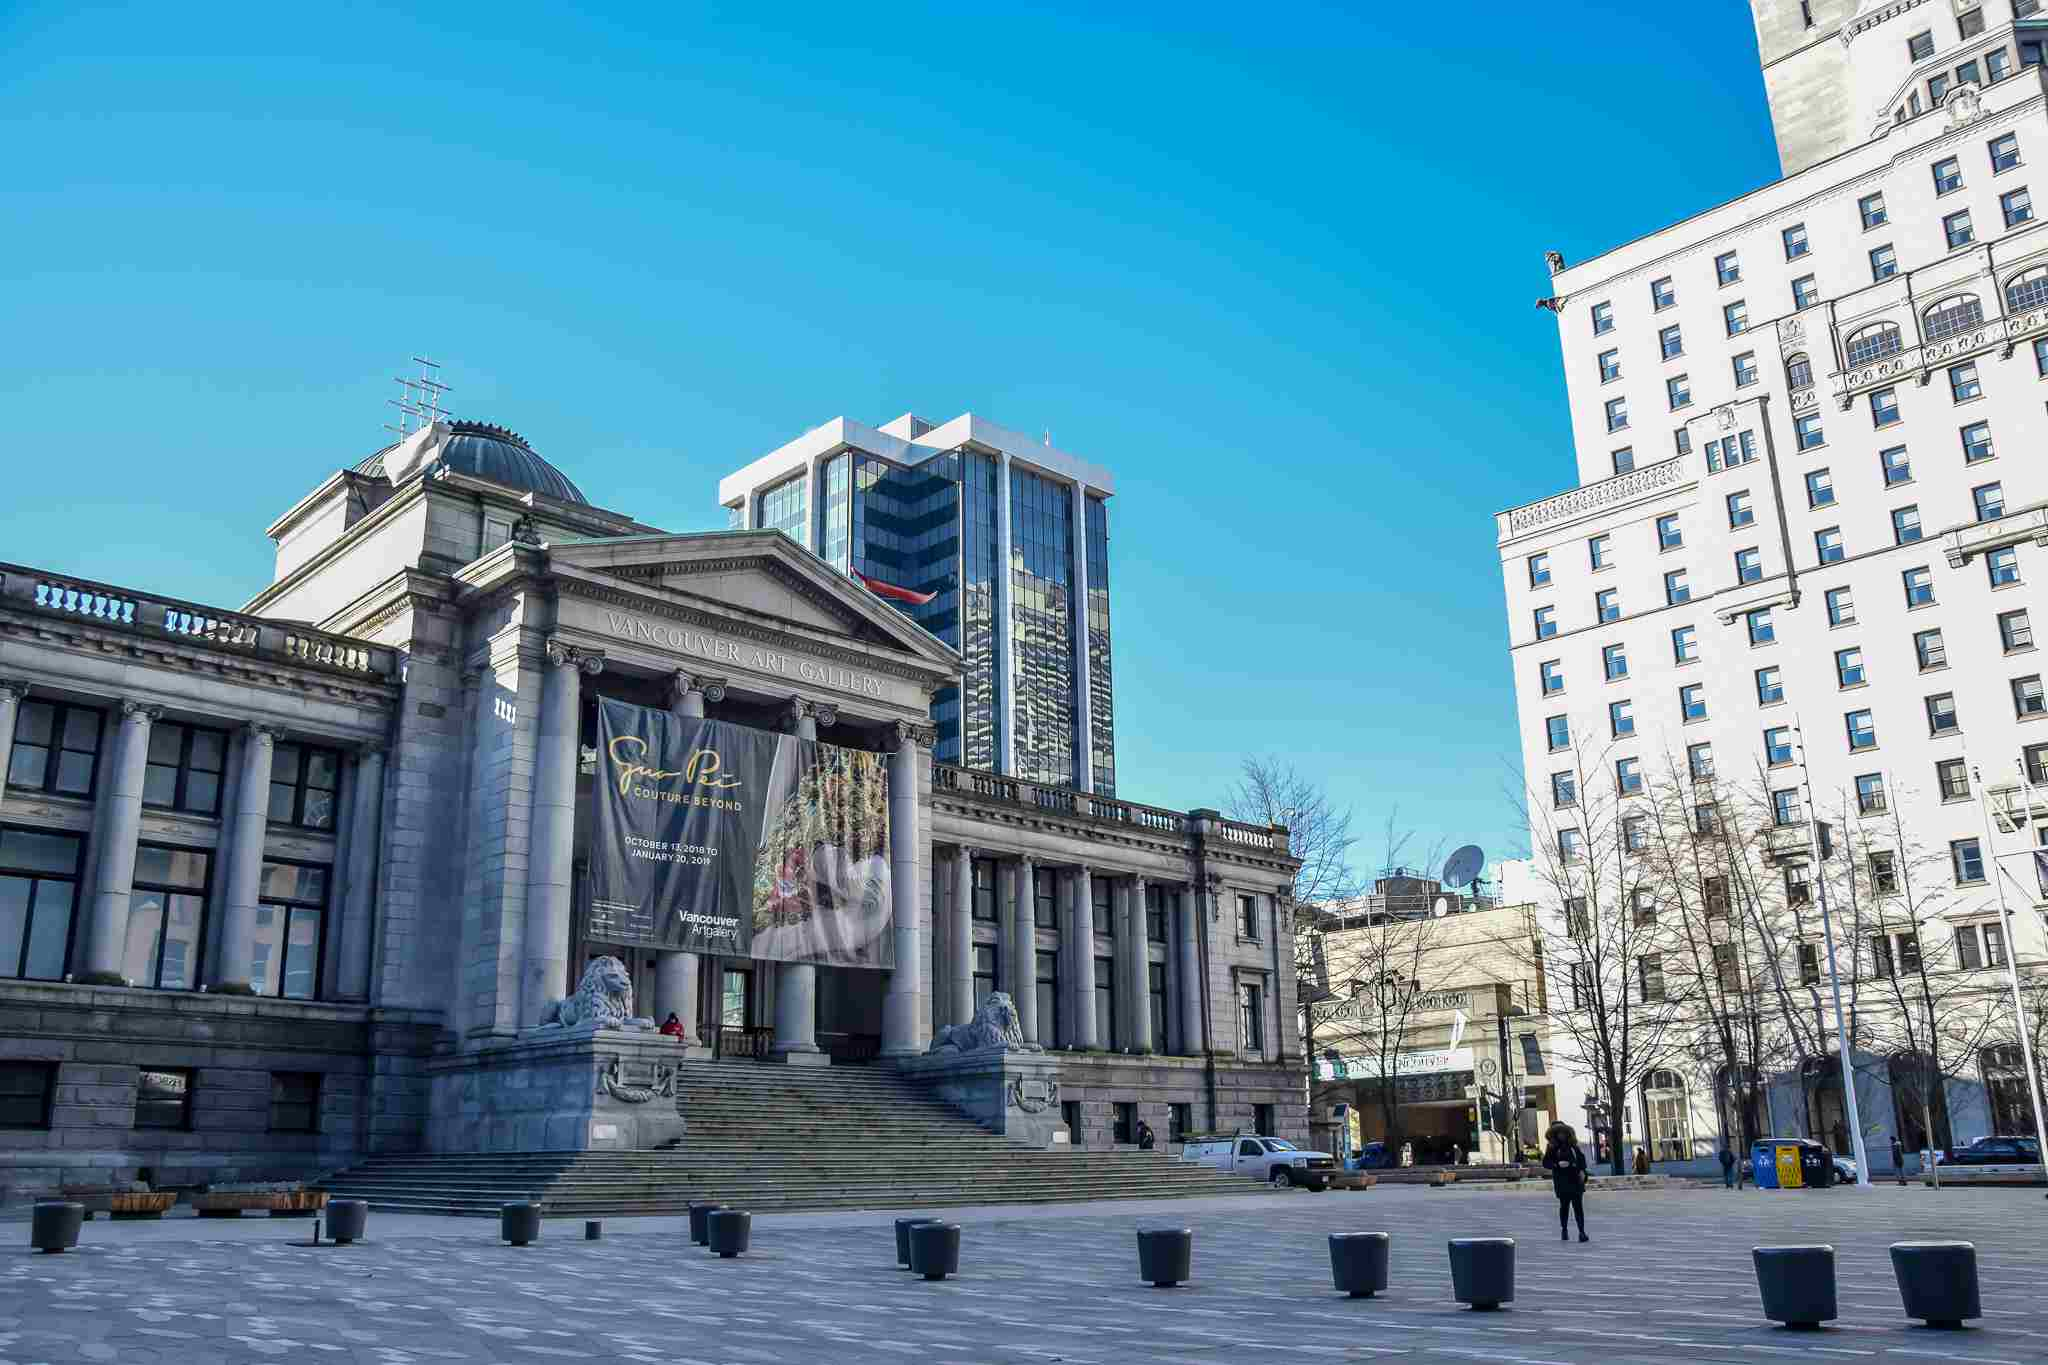 exterior of the Vancouver Art Gallery